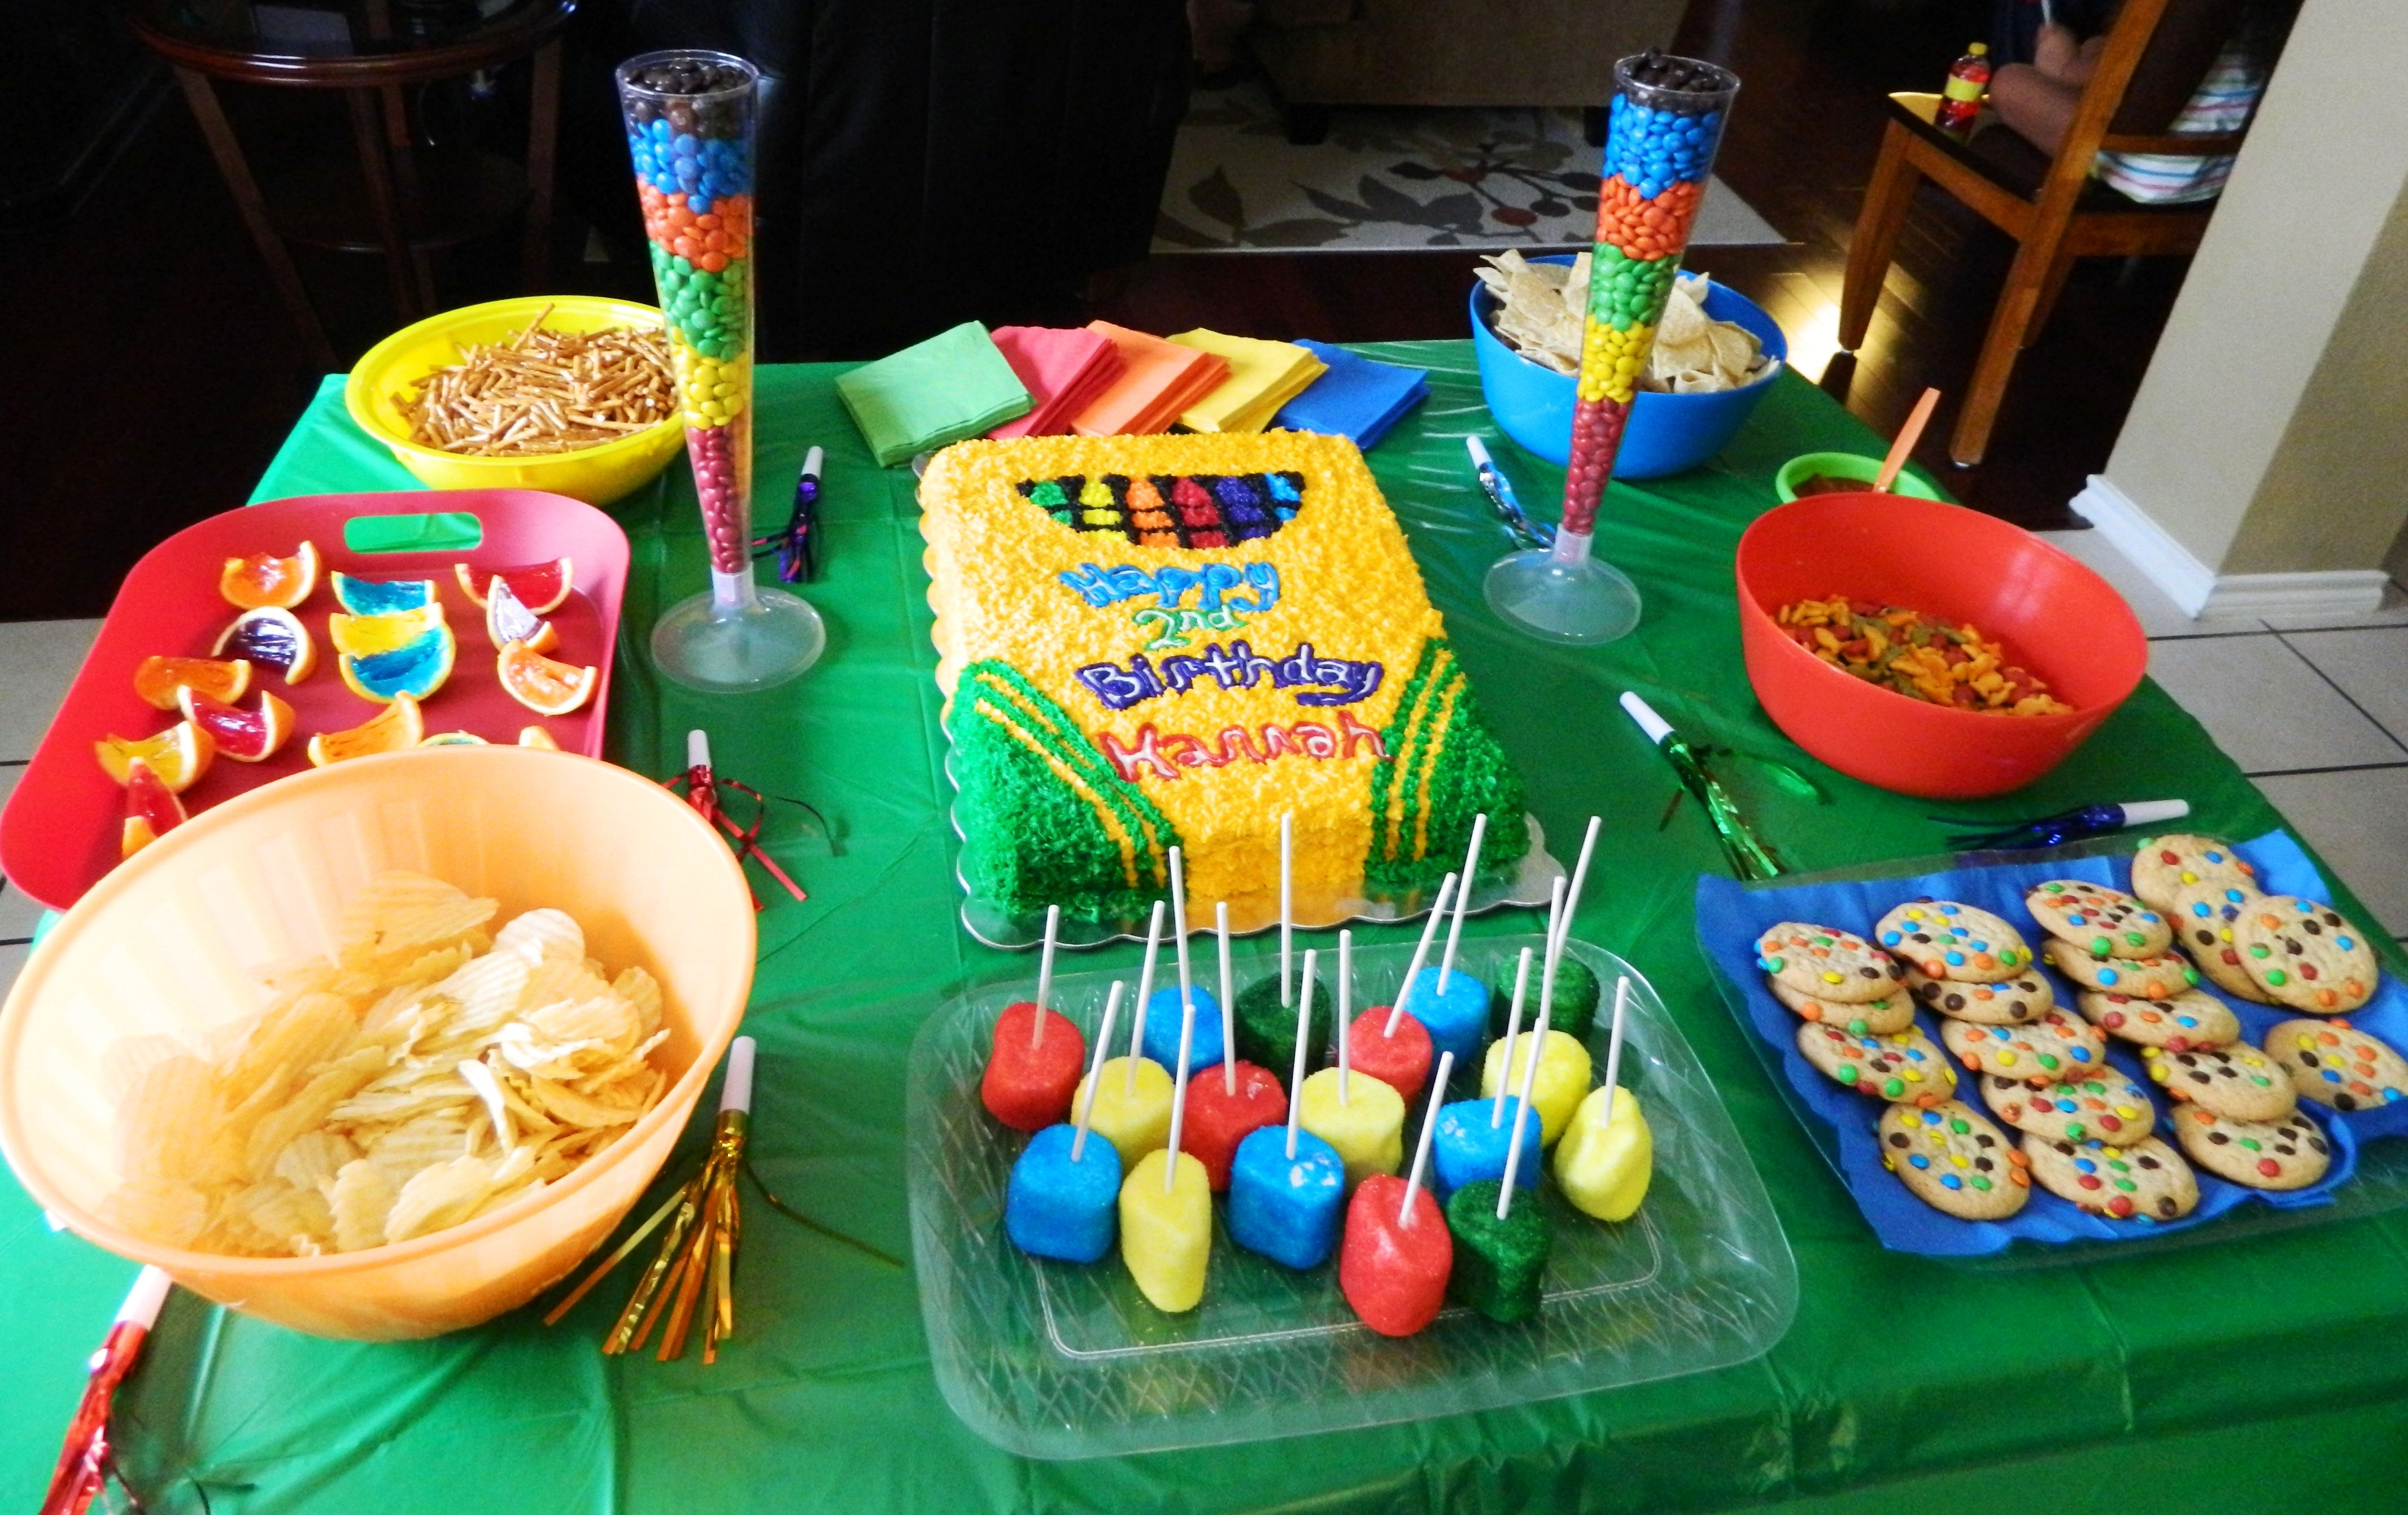 Crayola Or Crayon Themed Birthday Party For 2 Year Old Snacks MMs Chips